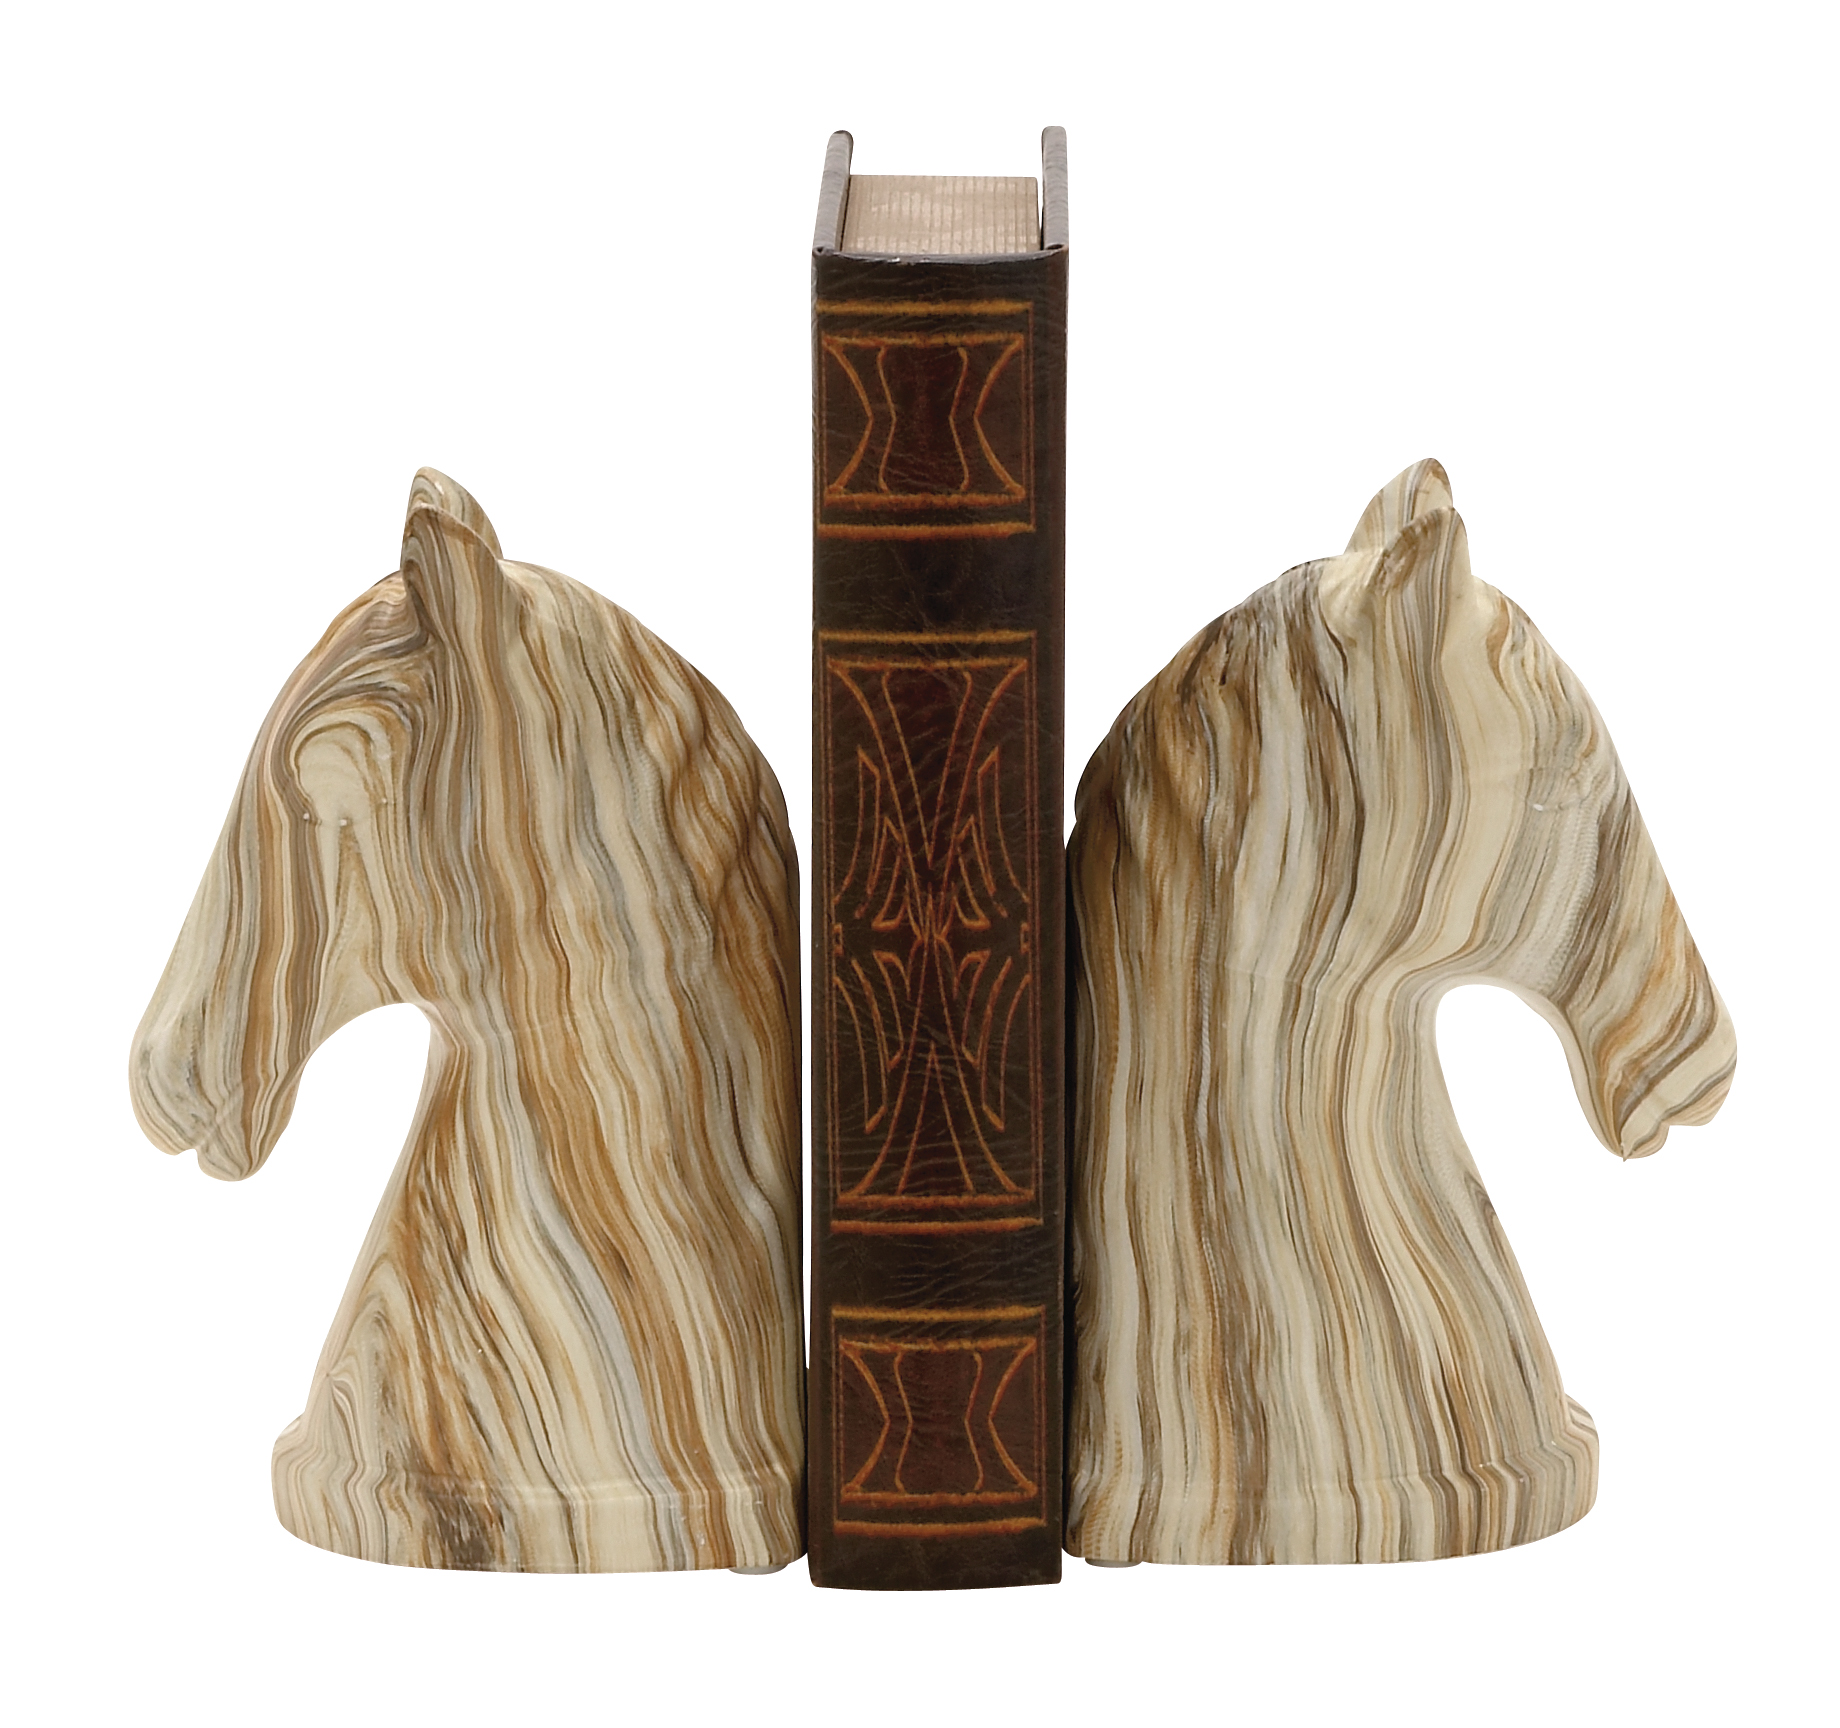 Decmode Pair Of Contemporary 8 Inch Marbled Ceramic Horse Head Bookends